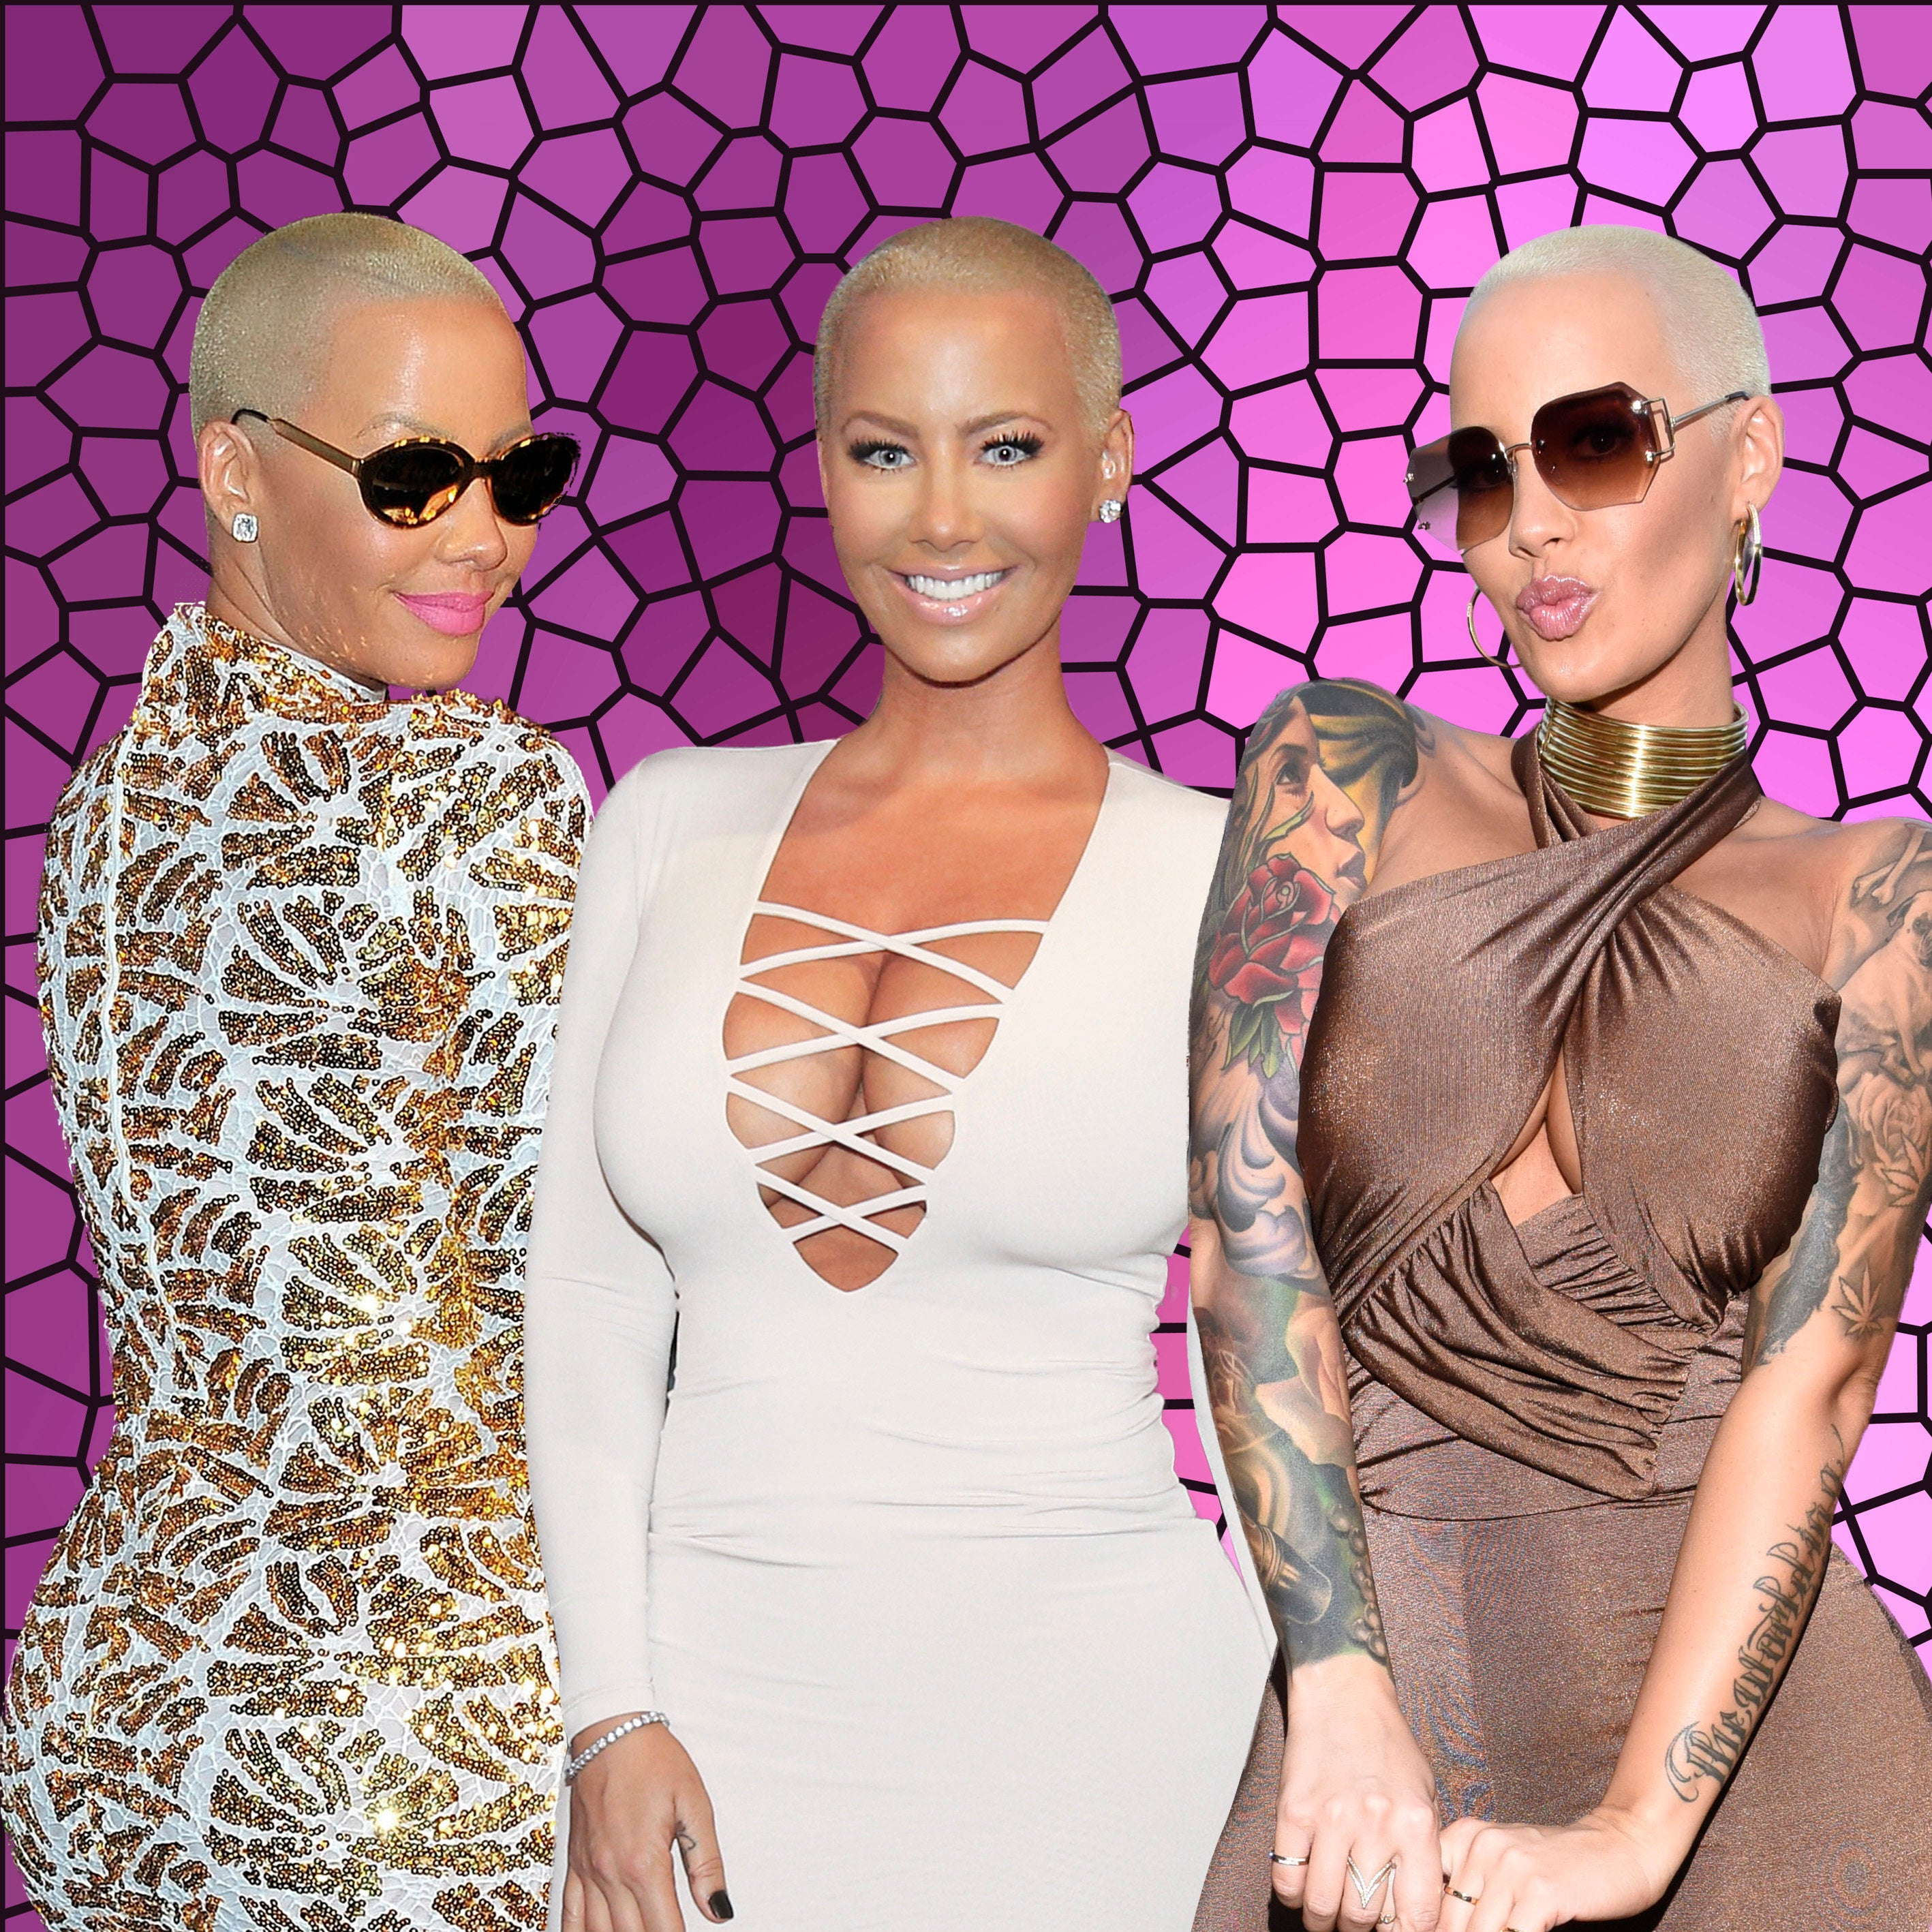 35 of Amber Rose's Most Body Confident Looks